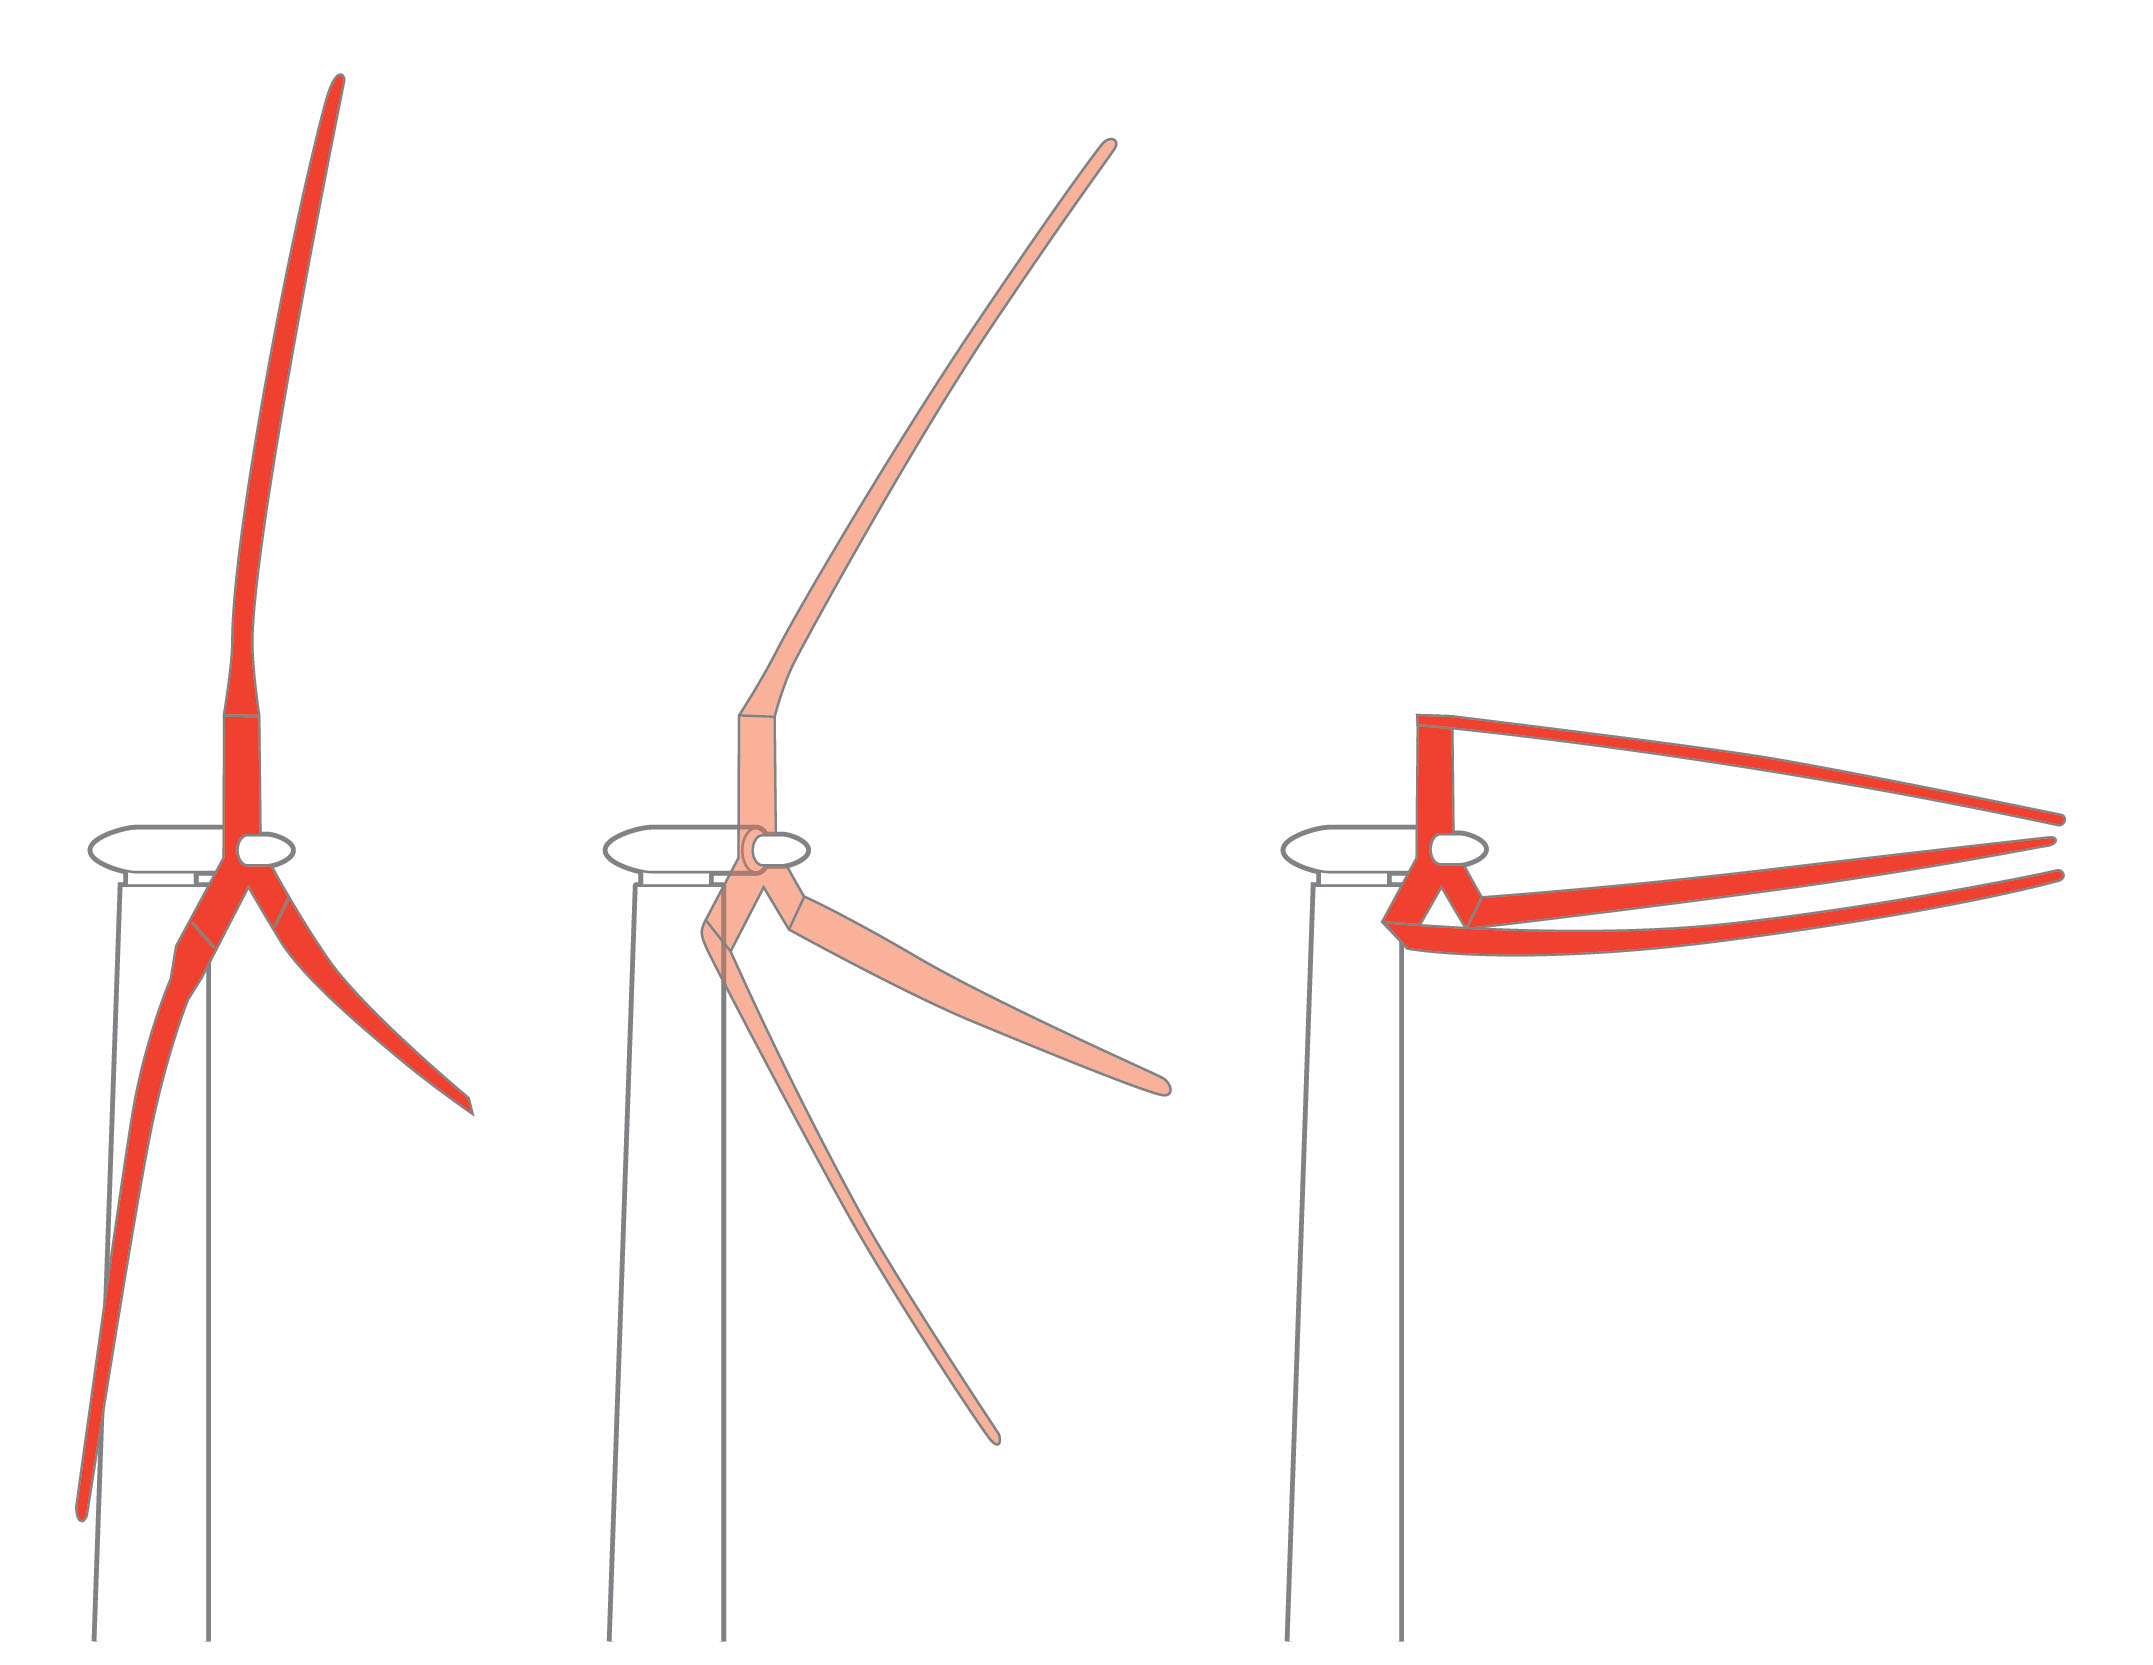 wind_blades Folding Blade Design Could Allow For 50 MW Turbines